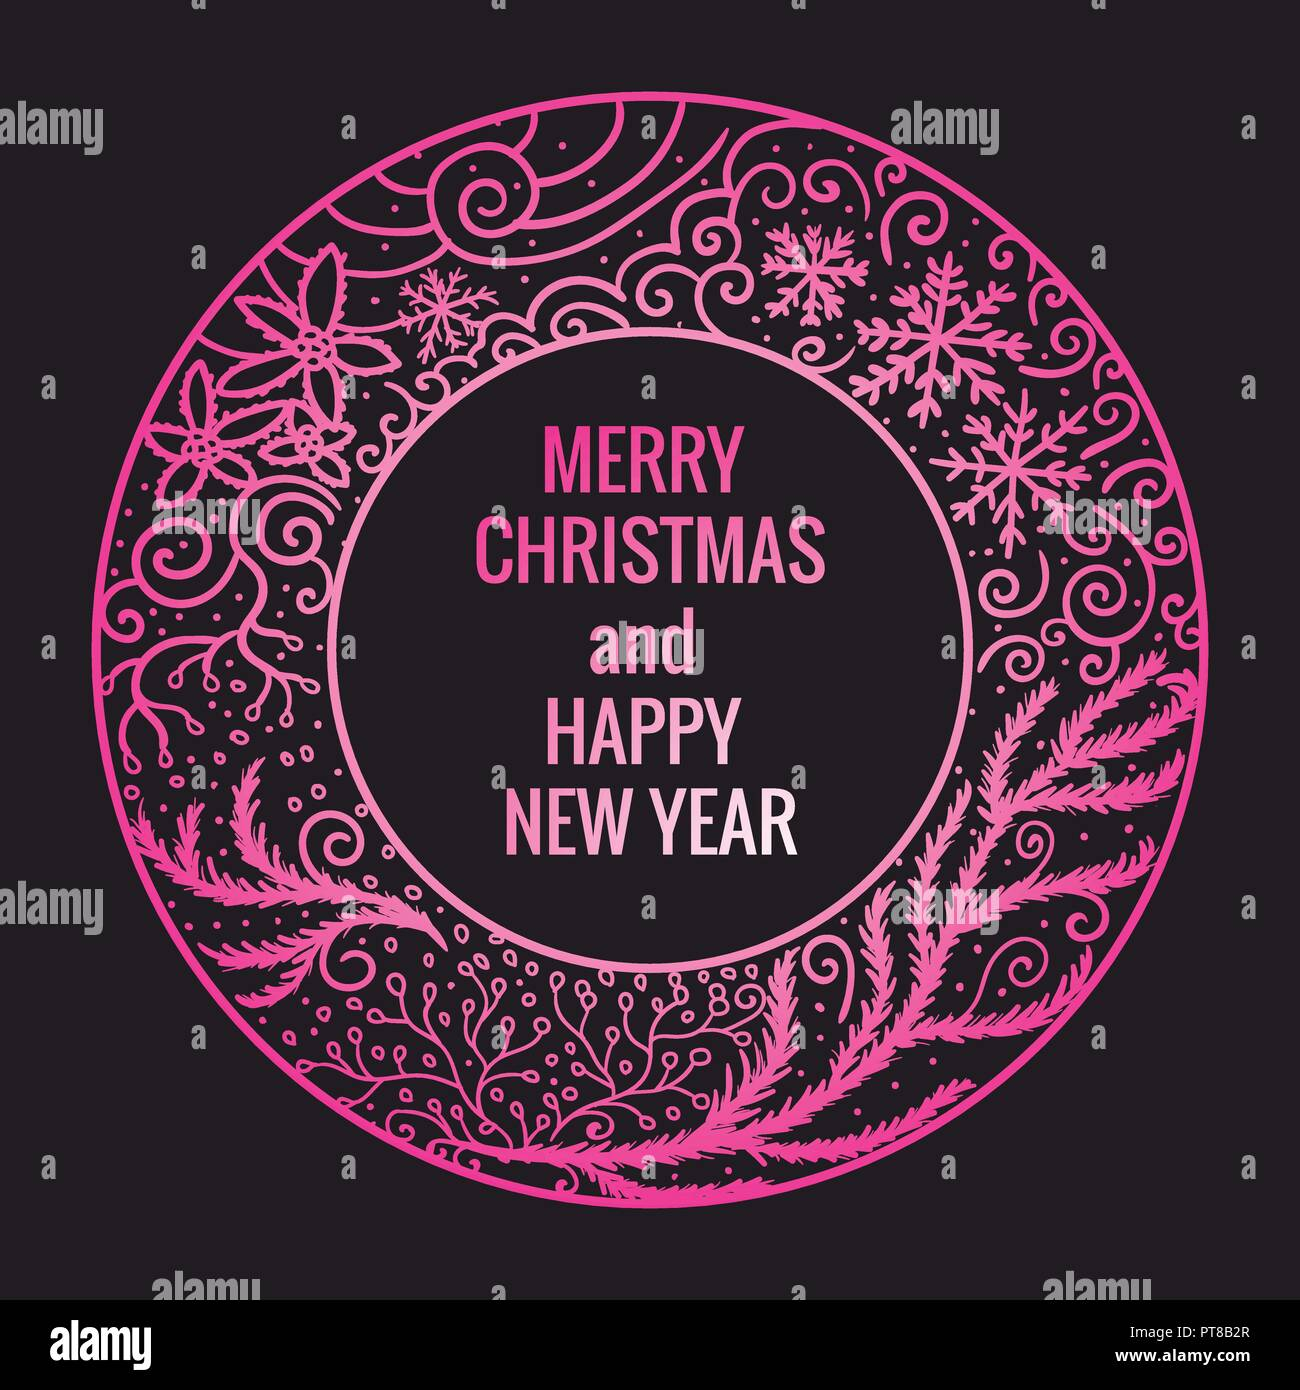 Card Merry Christmas and Happy New Year. Round frame hand drawn pink color ornaments. Vector illustration isolated on dark background. - Stock Image